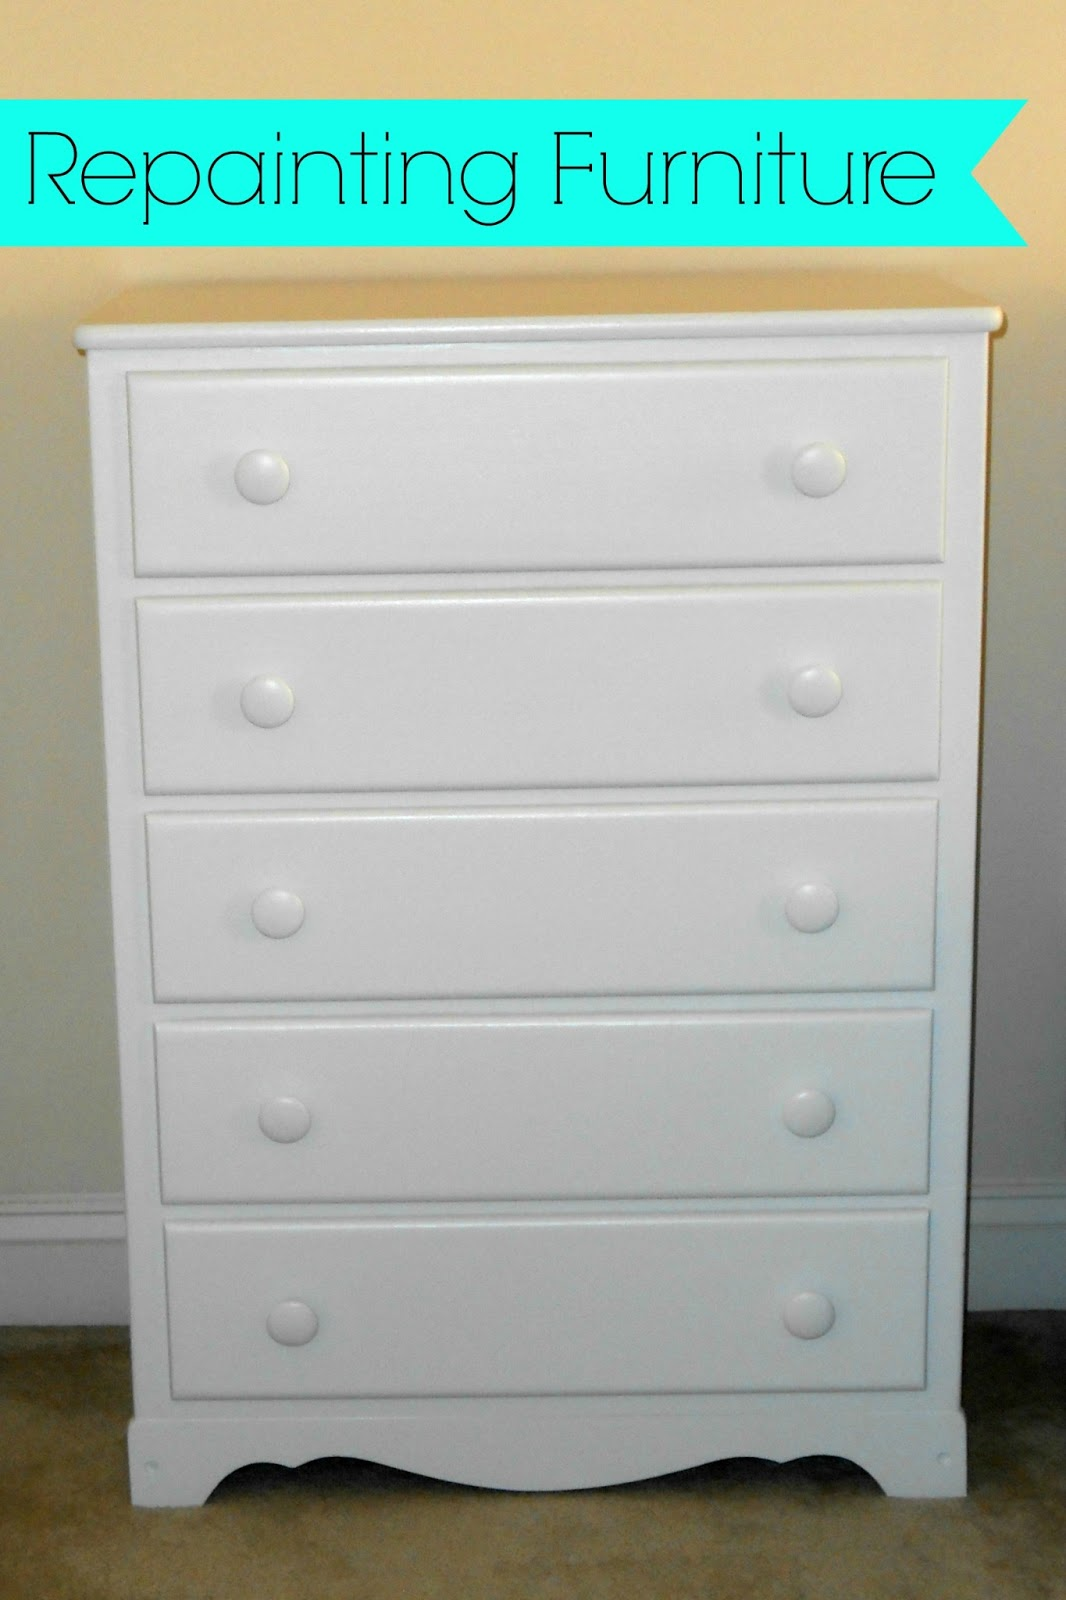 Life Dresser Makeover How To Paint Wood How To Paint Furniture. Full resolution‎  snapshot, nominally Width 1066 Height 1600 pixels, snapshot with #04C7BB.